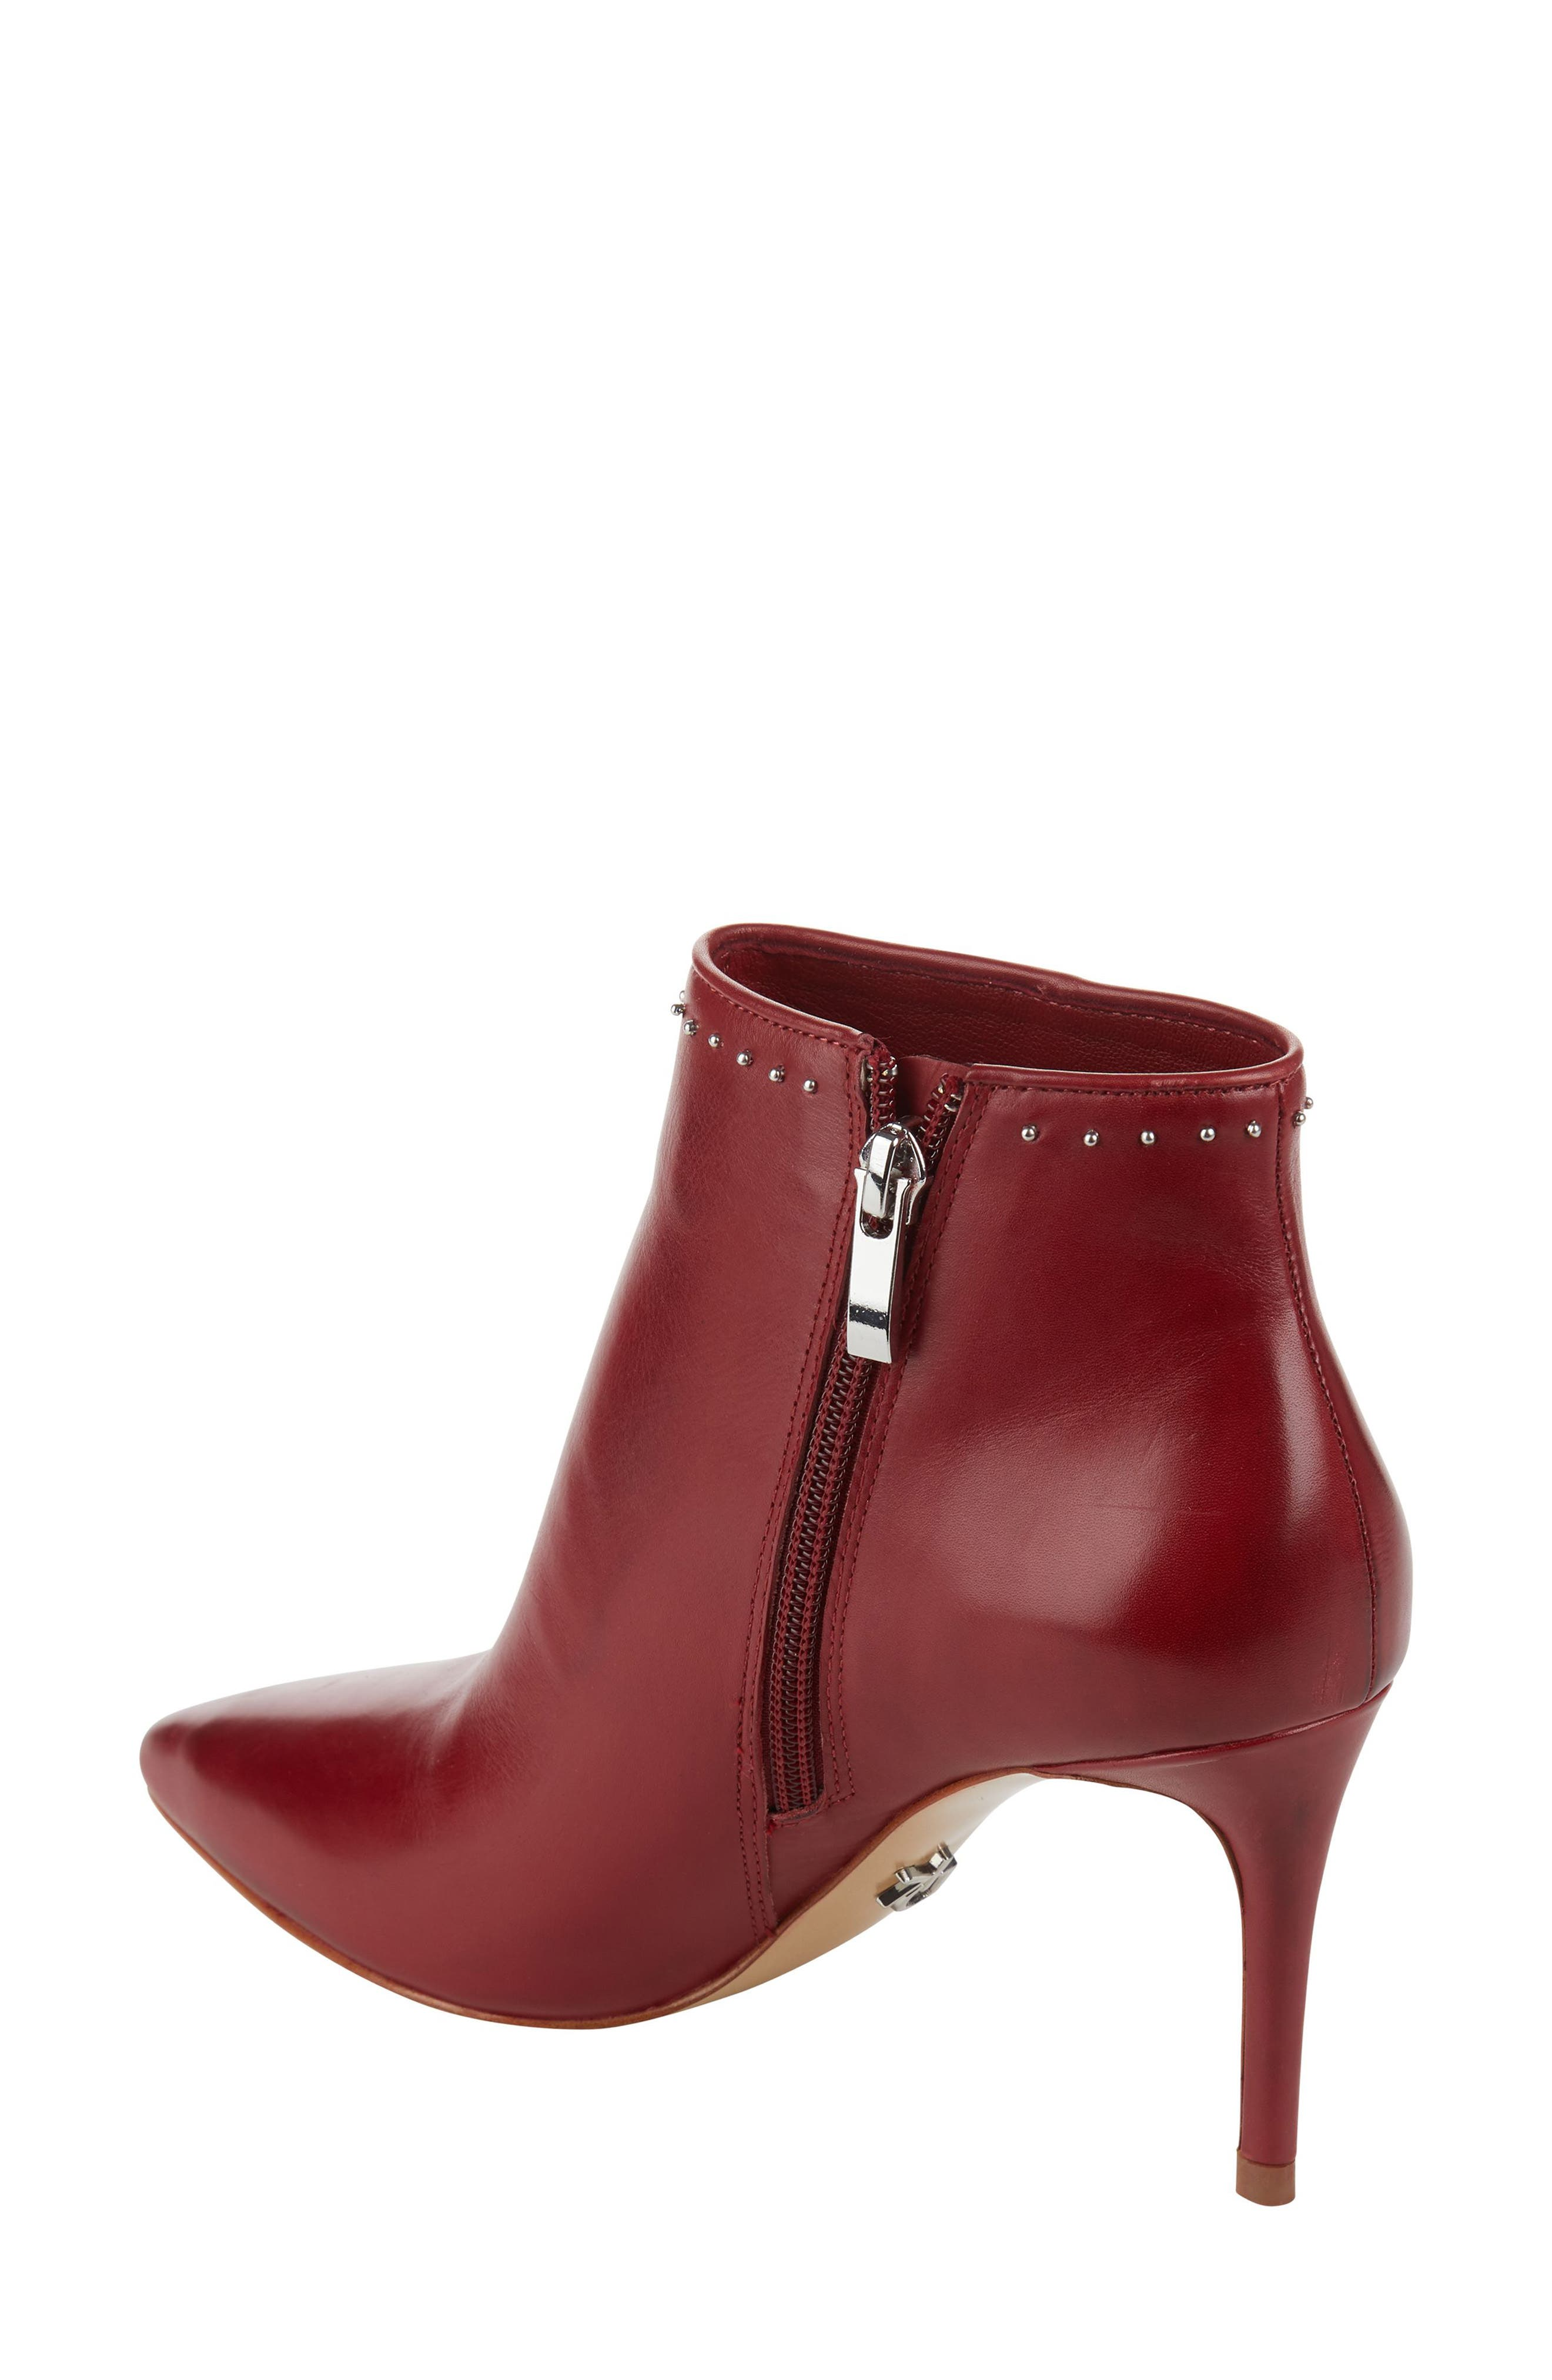 Donna Karan Lizzy Studded Bootie,                             Alternate thumbnail 2, color,                             621